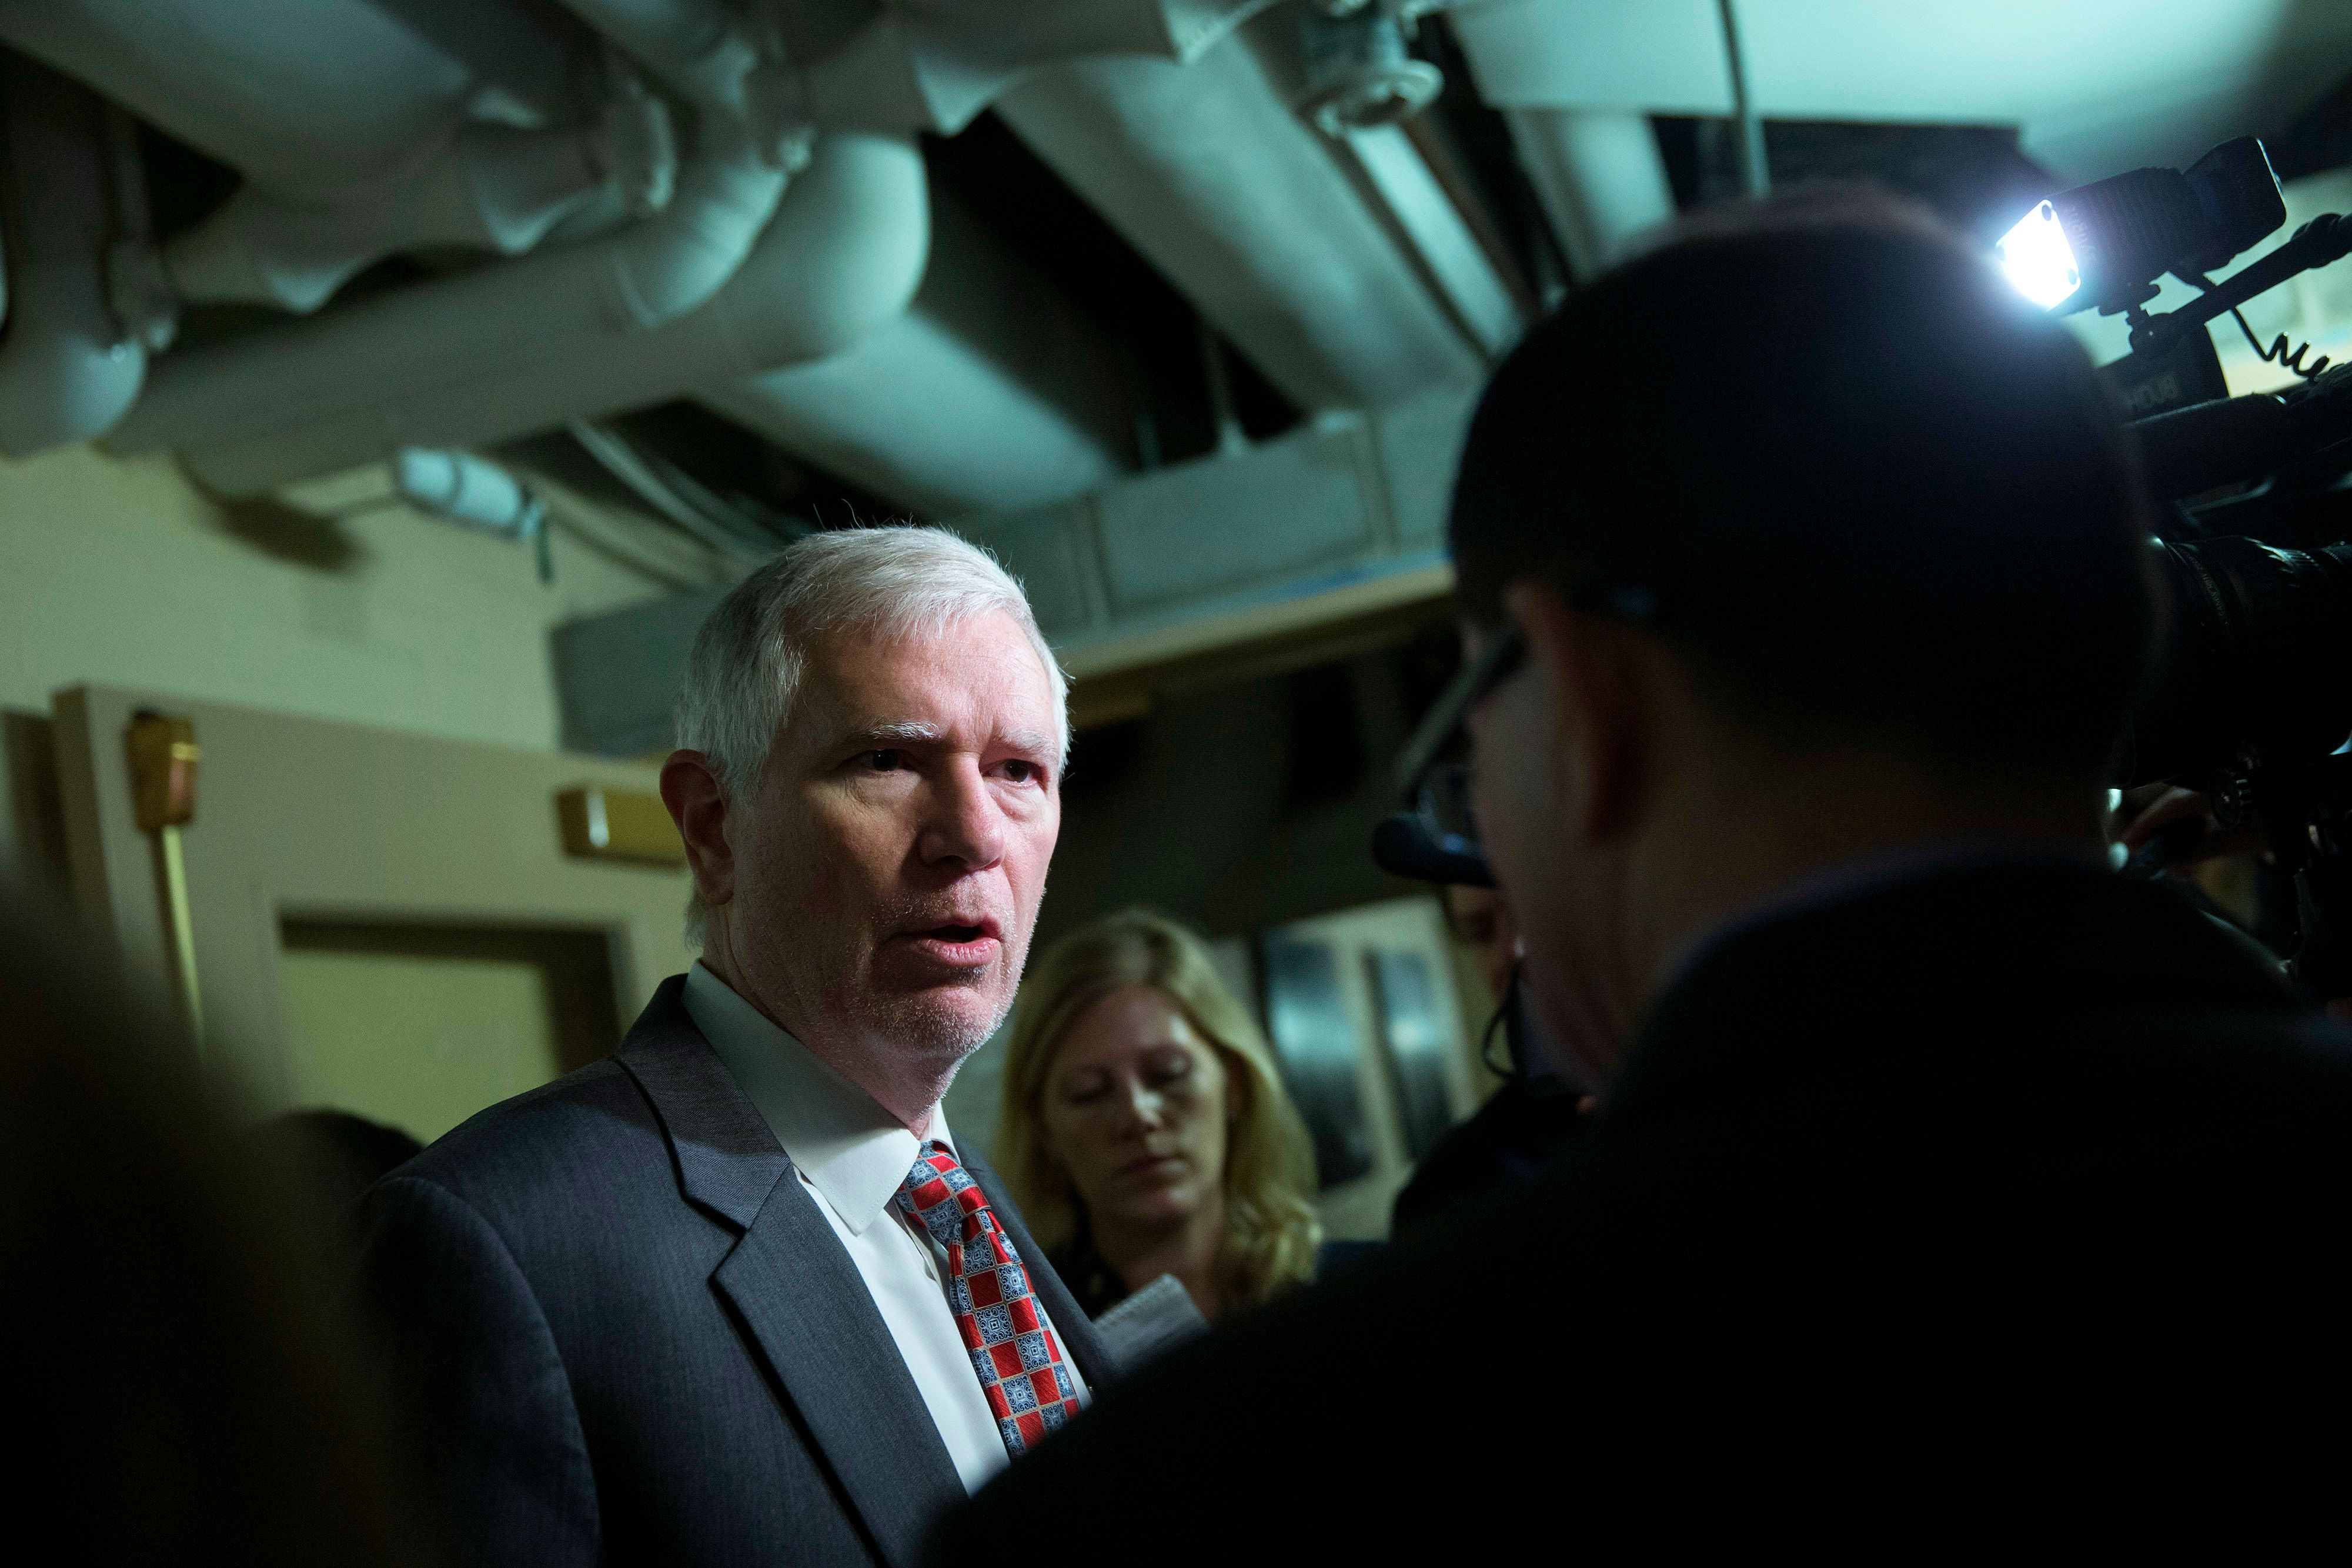 Representative Mo Brooks, a Republican from Alabama, speaks to reporters after a House Republican Conference meeting at the U.S. Capitol Building in Washington, D.C., U.S., on on Wednesday, Dec. 10, 2014. Congress will vote this week on a $1.1 trillion spending plan that would avert a U.S. government shutdown as Democrats agreed to roll back rules affecting banks, clean water and rest for truckers. Photographer: Andrew Harrer/Bloomberg via Getty Images